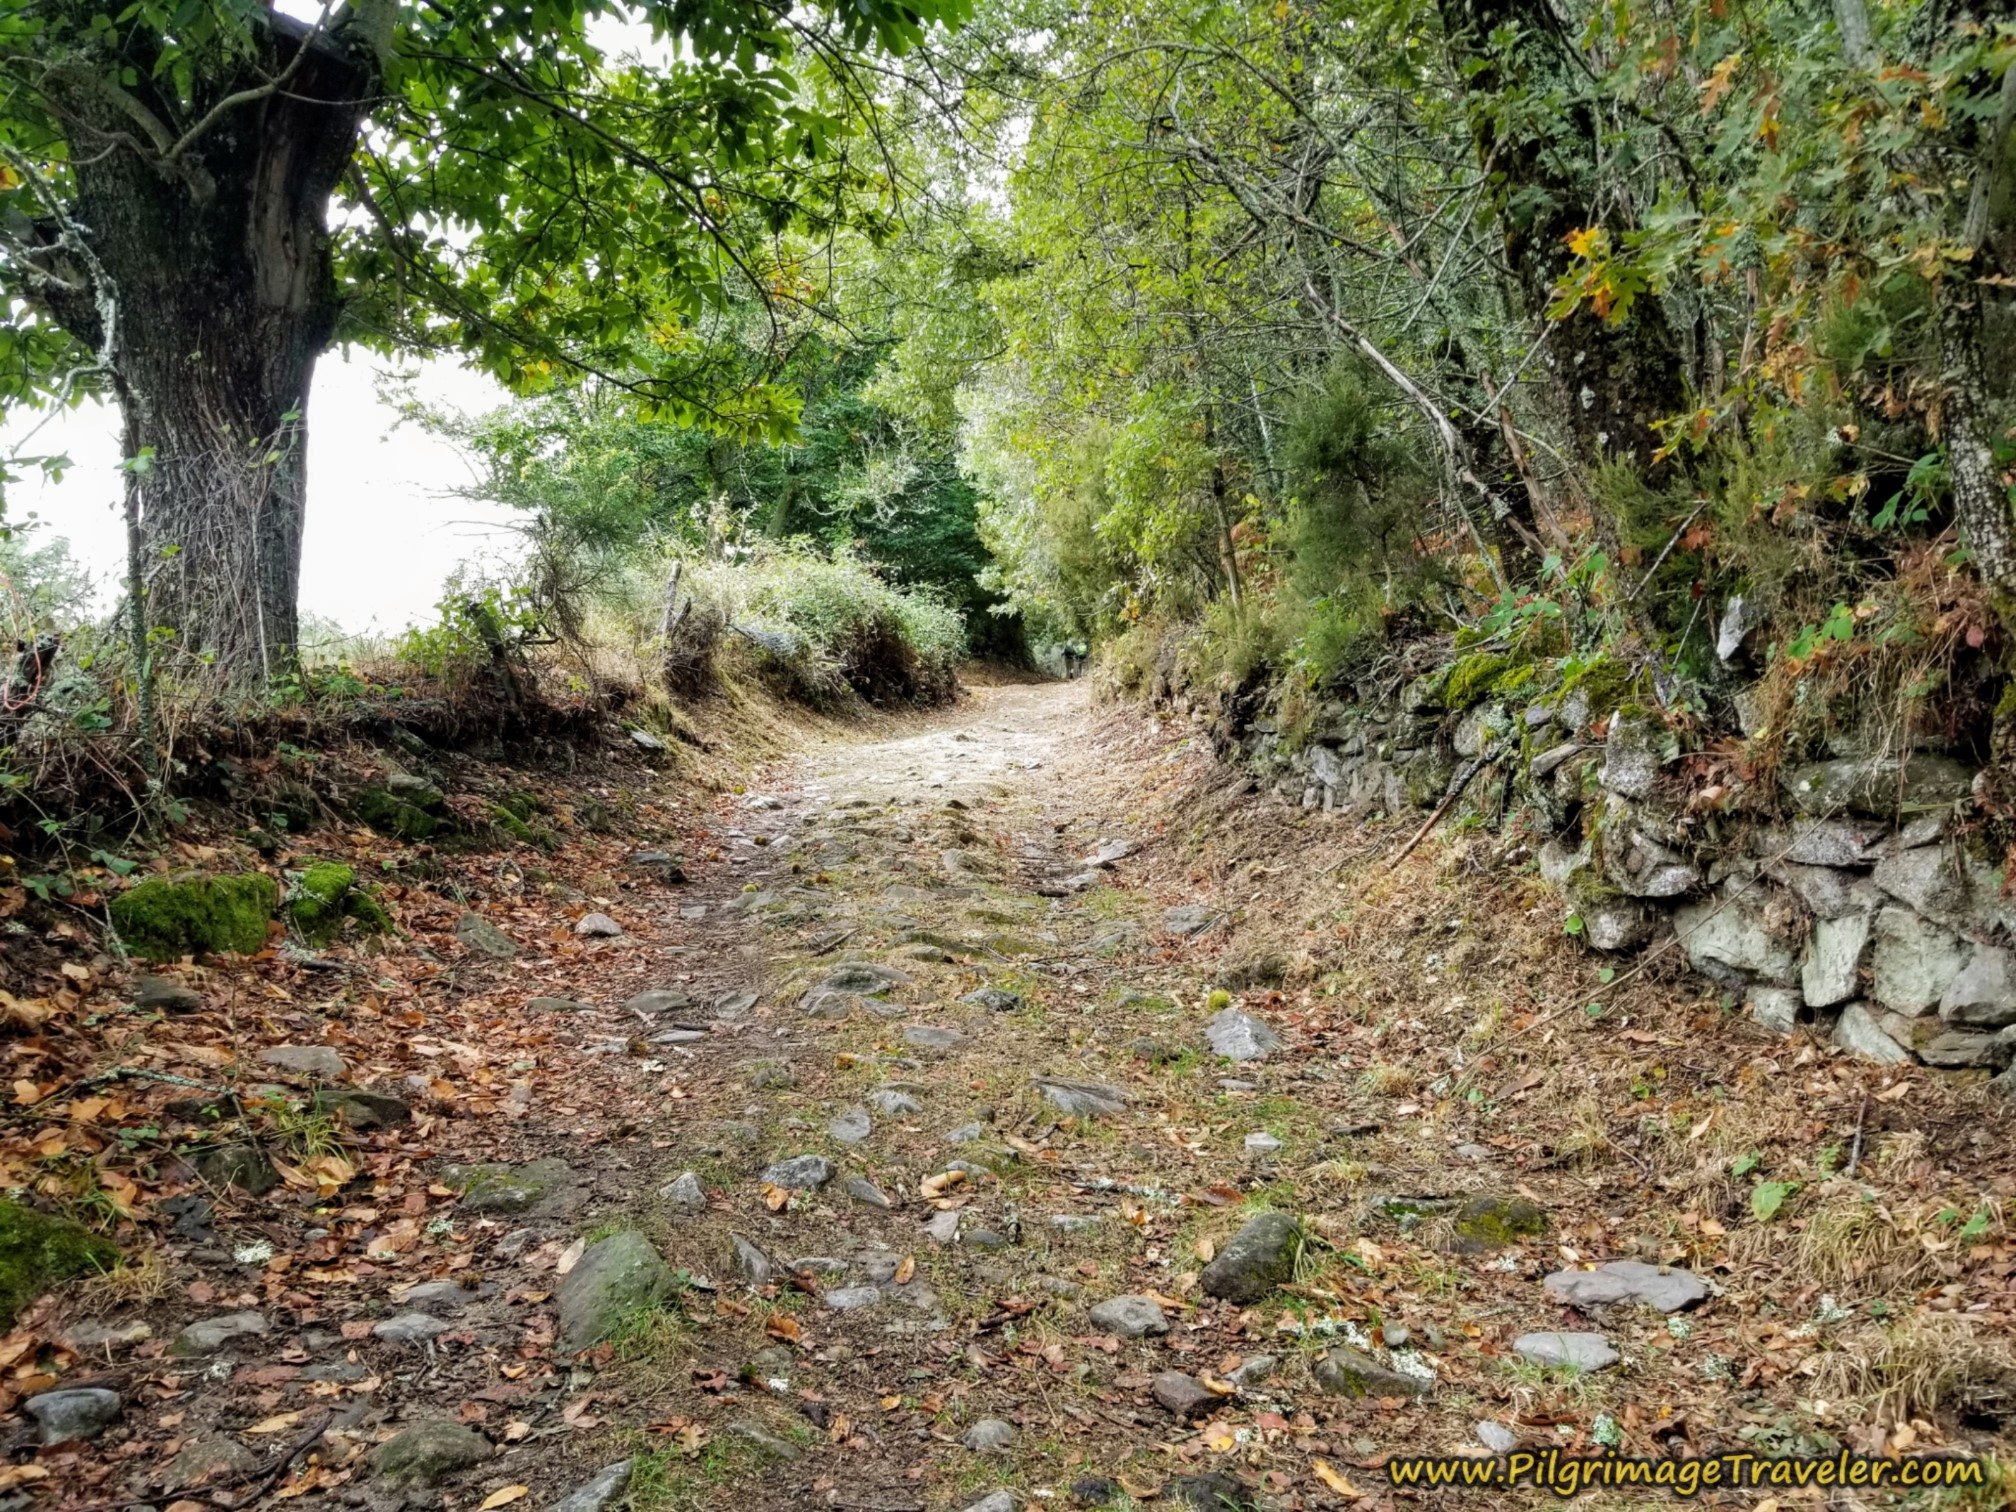 Remnants of Roman Road on the Camino Sanabrés from Lubián to A Gudiña